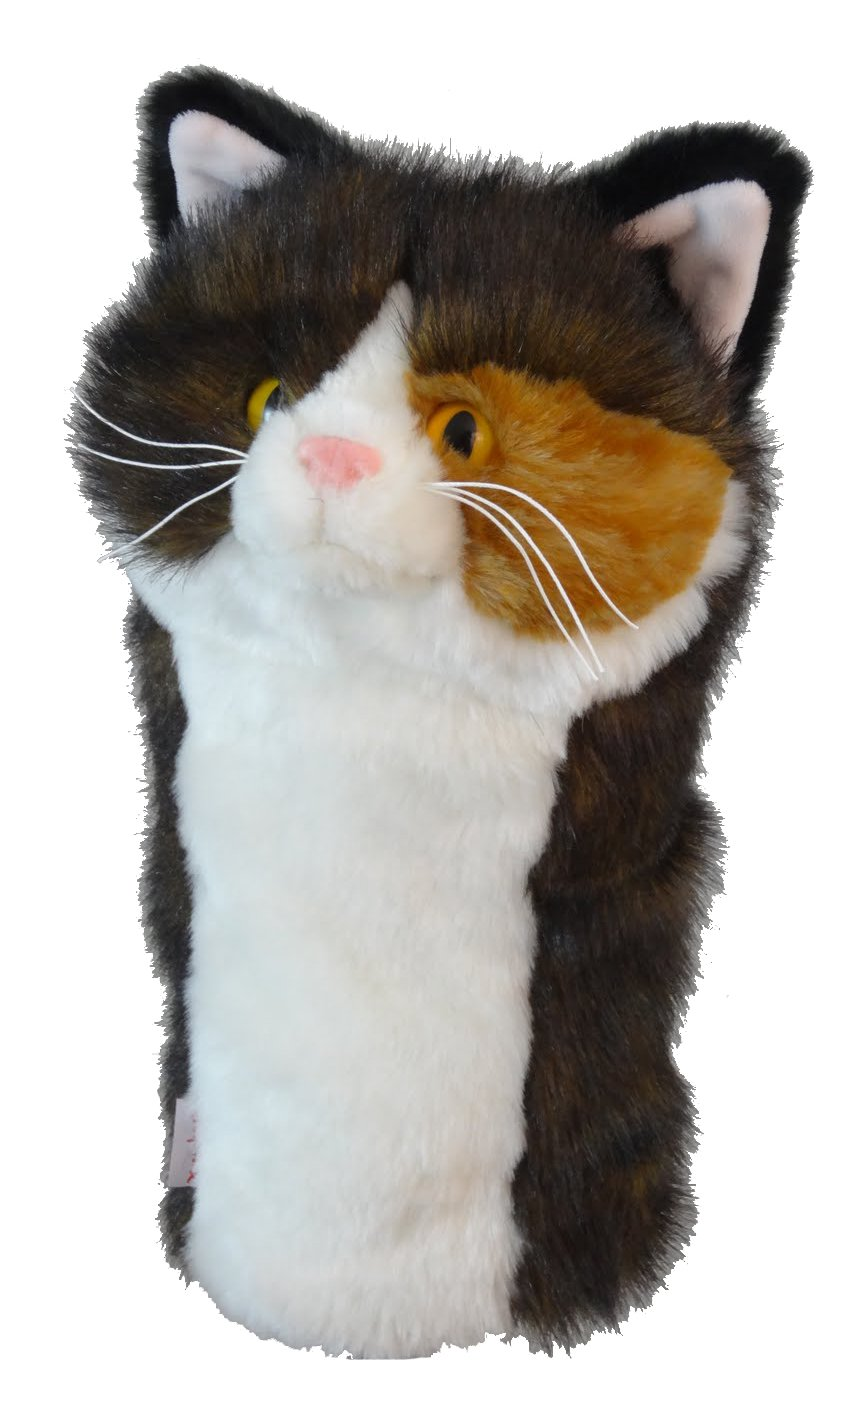 Daphne's Headcovers Torti Cat Golf Club Head Cover for 460cc Driver